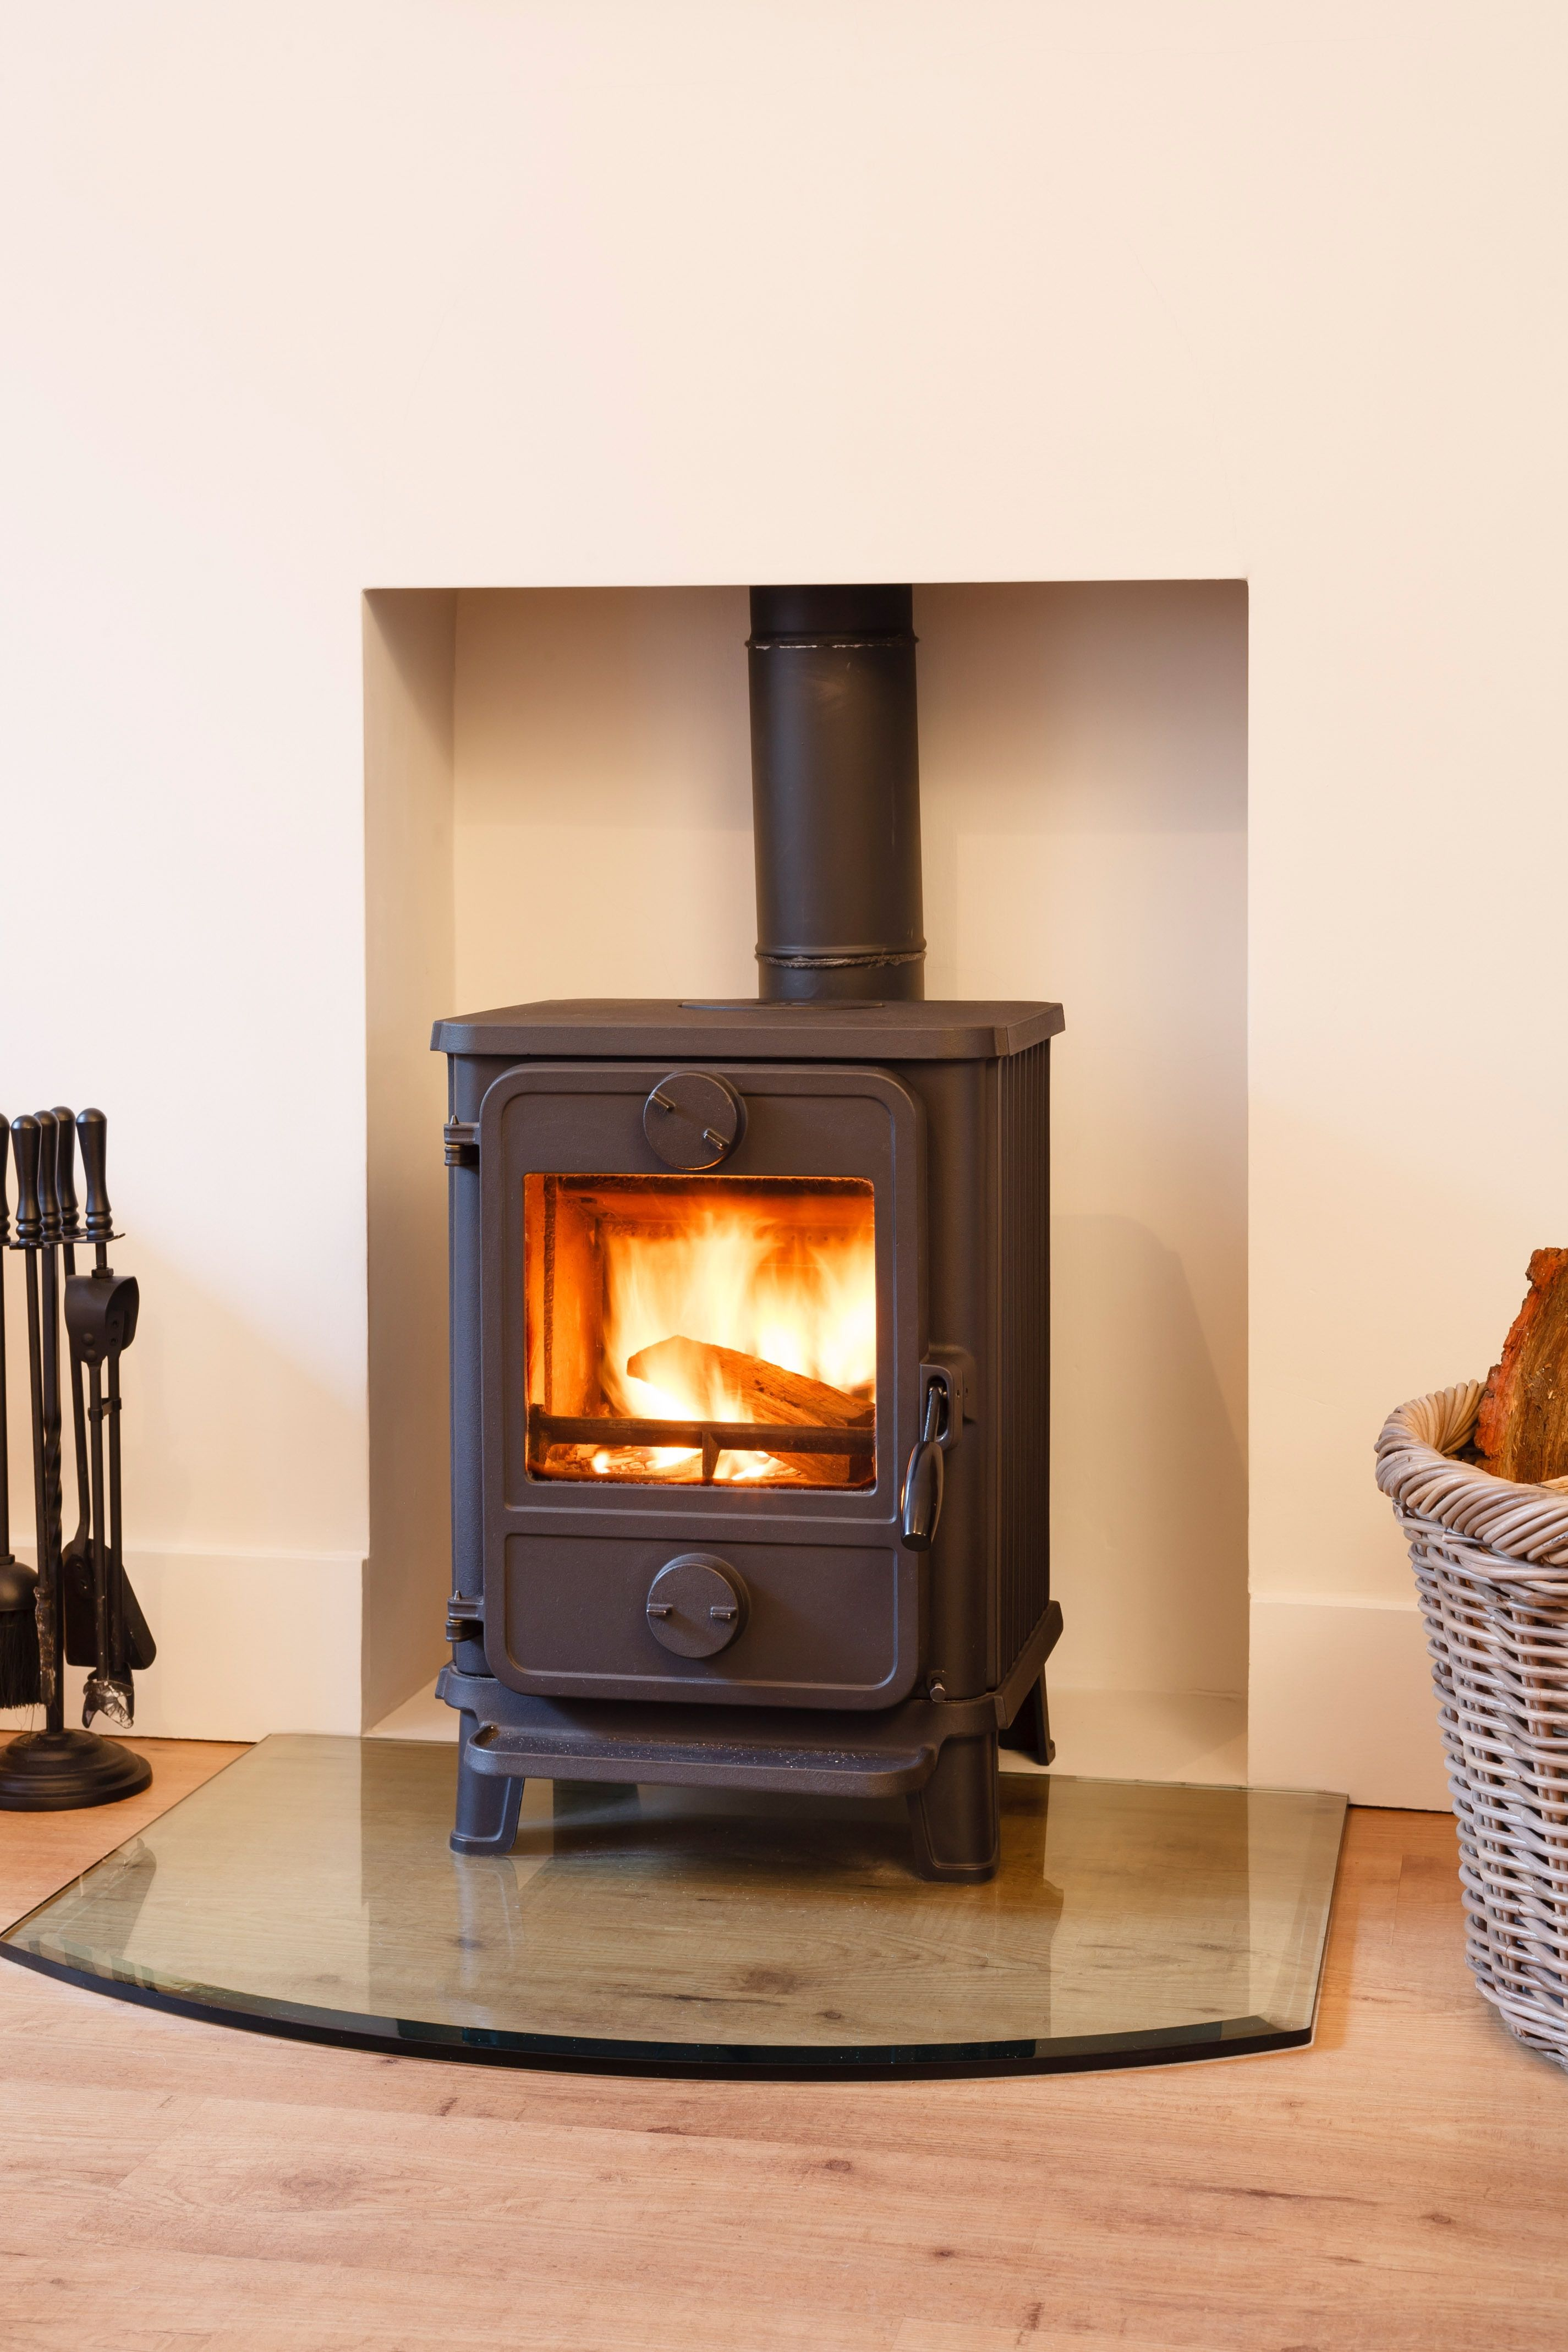 Beautiful Glass Hearths Contact Us For Your Order 01303 220666 Or Visit Our Website Www Shepwayglass Wood Burning Stove Glass Fireplace Contemporary Fireplace